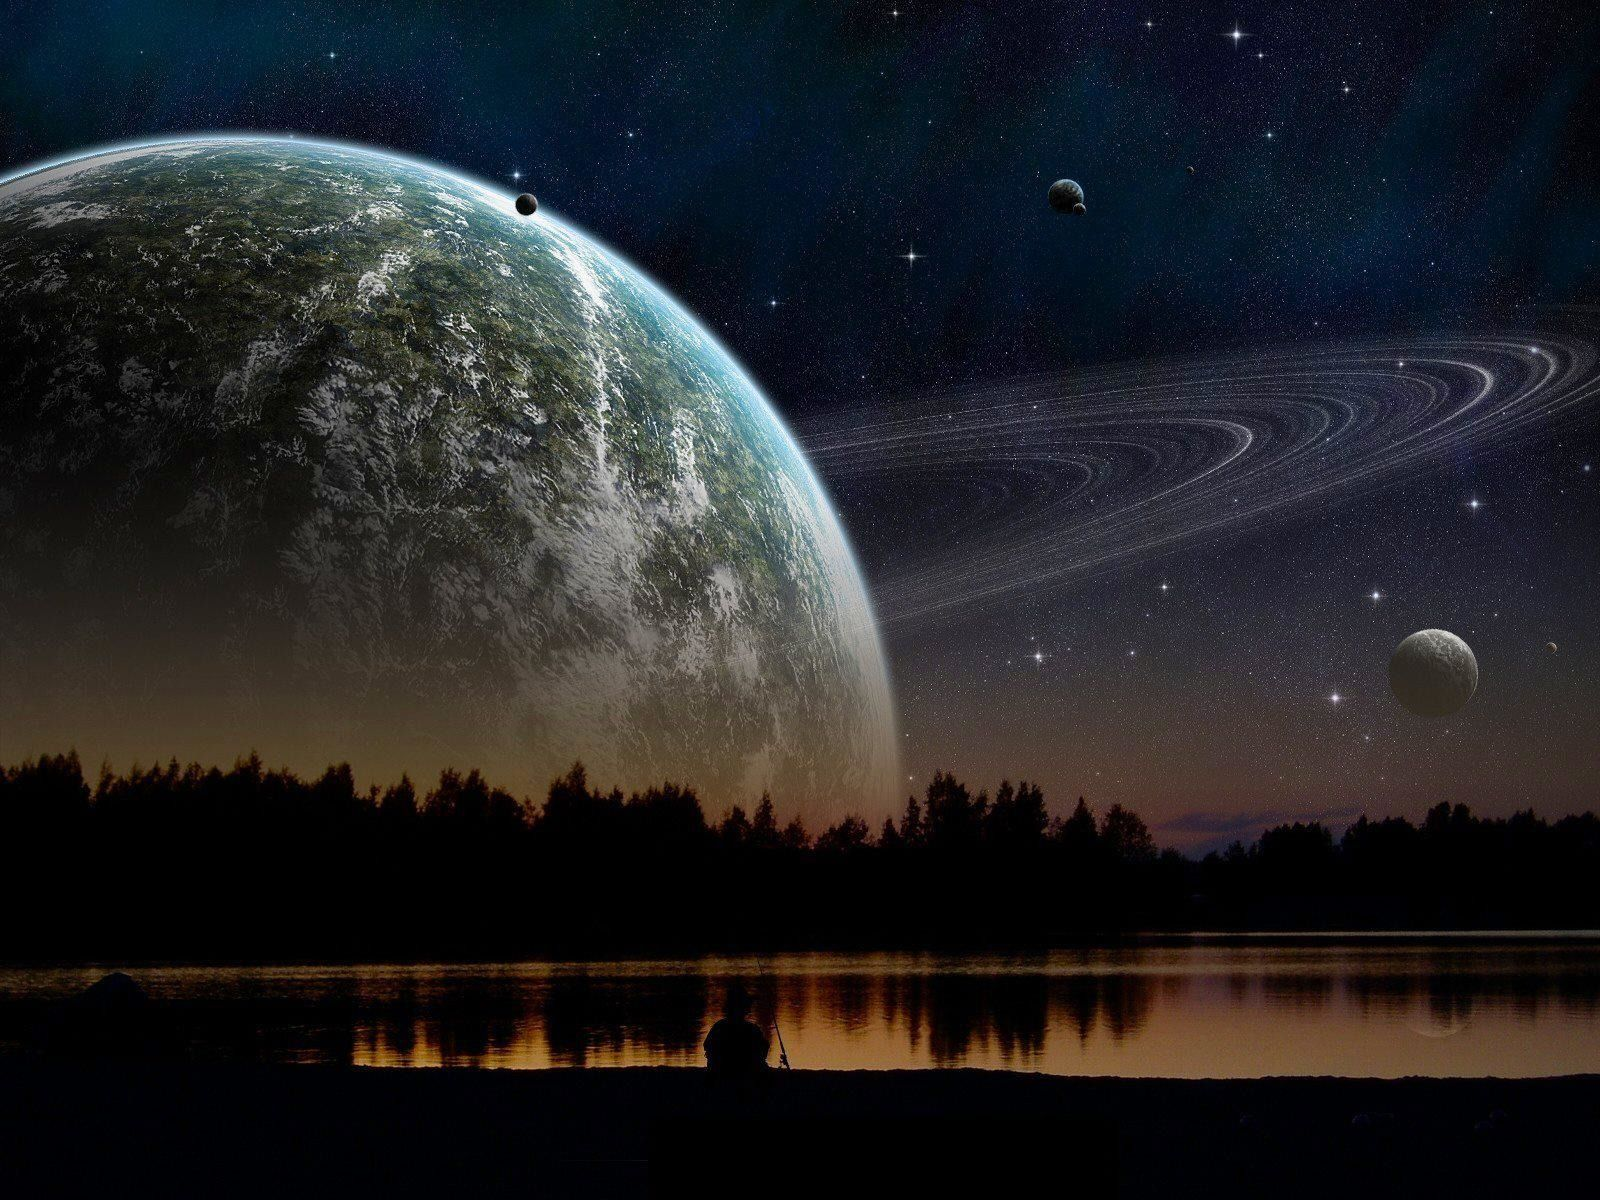 What It Would Look Like If Saturn Like Planet Was The Same Distance Away From The Earth As The Moon Is Universet